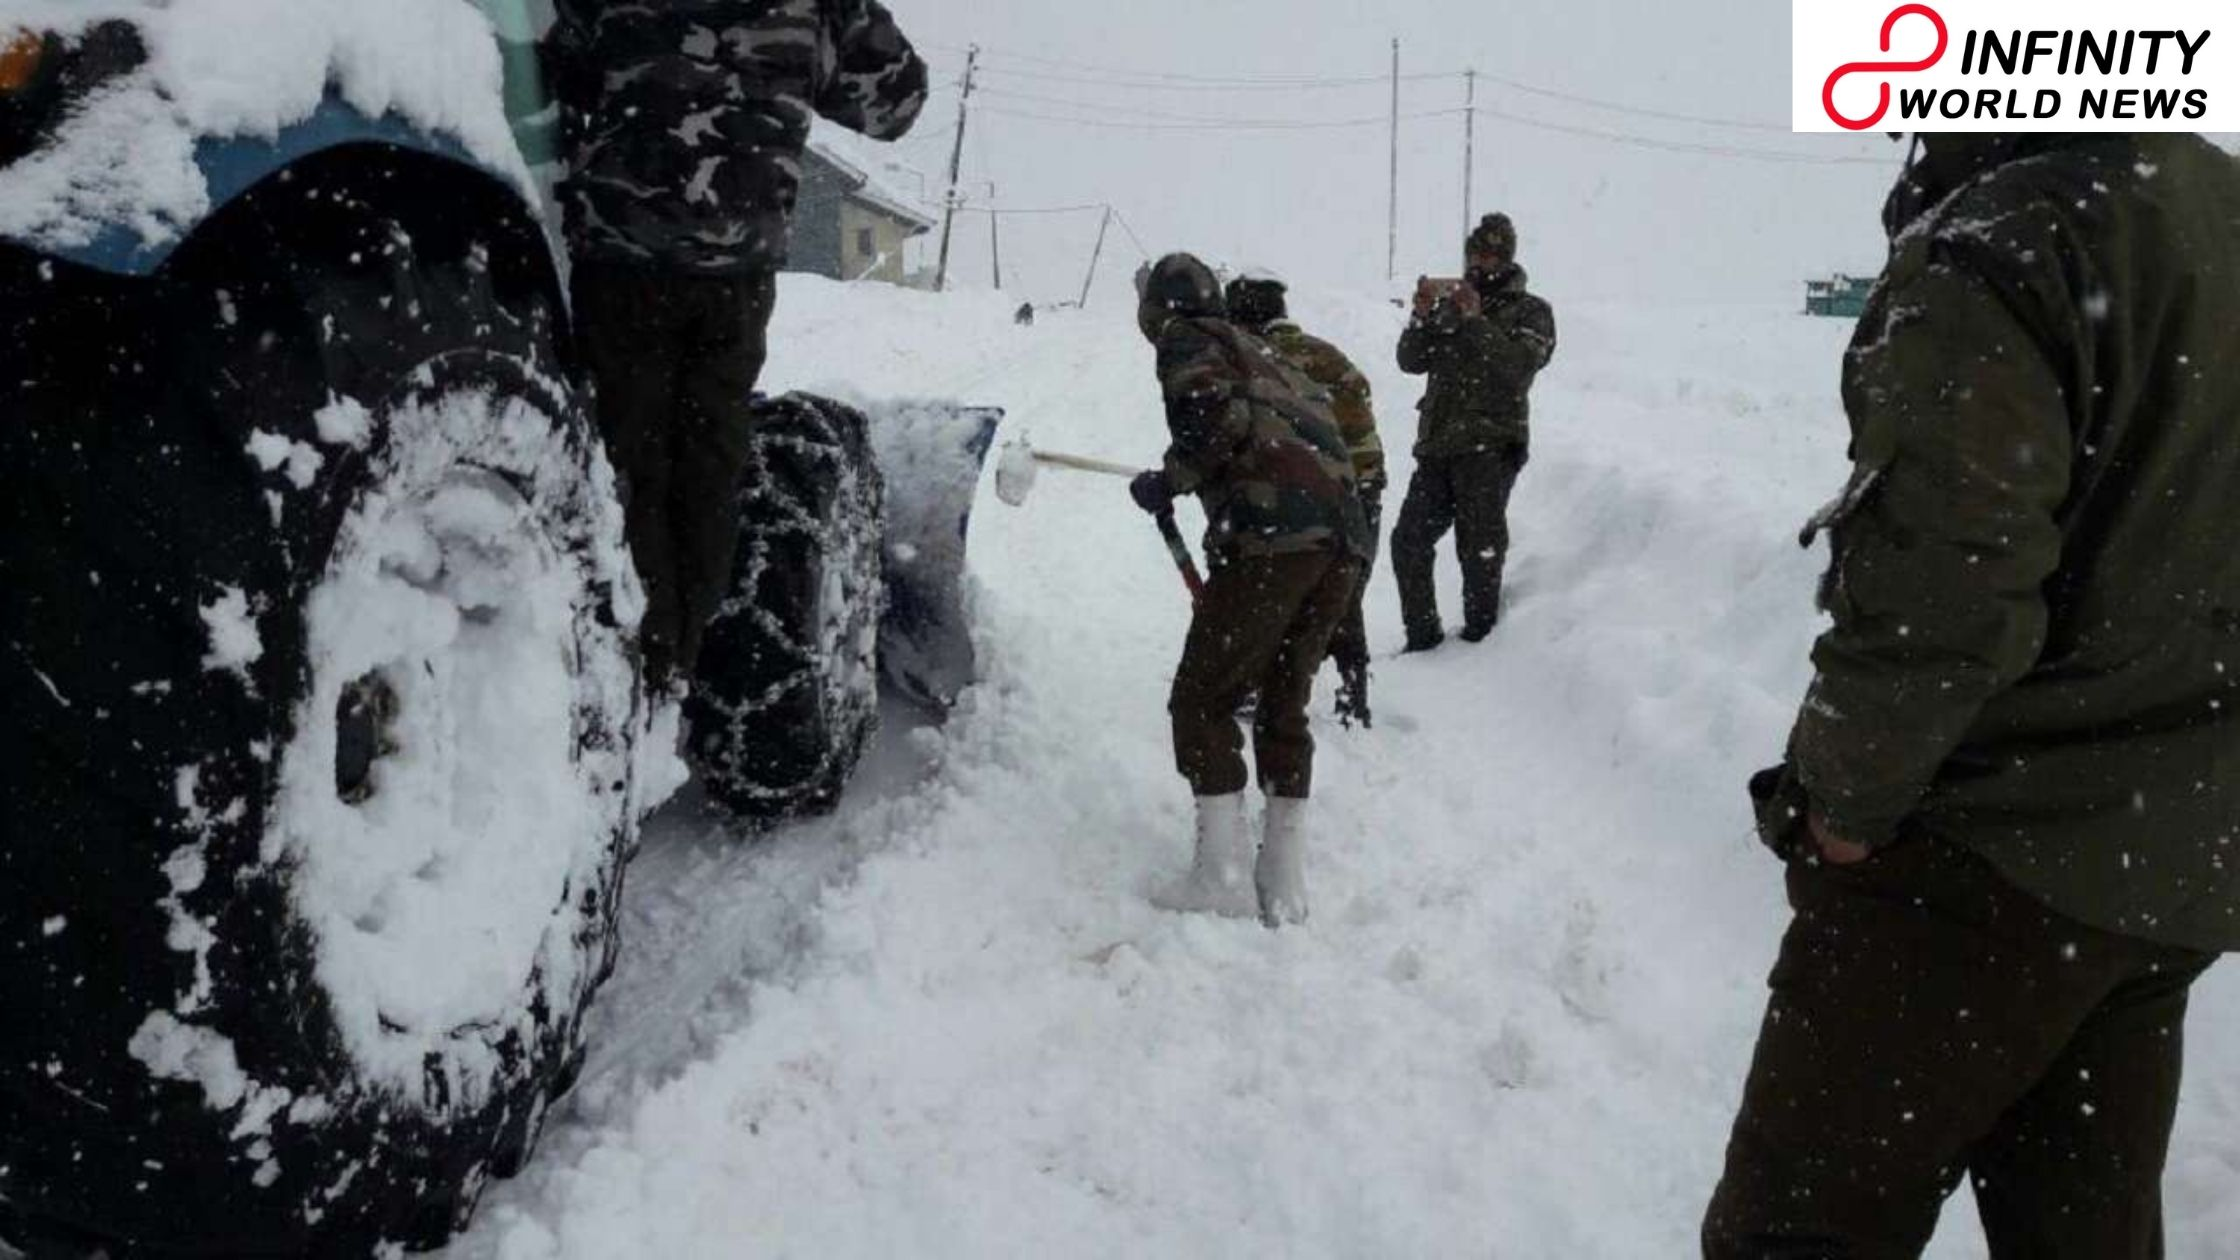 Most recent climate update: Cold conditions endure in north India; Kashmir gets new snowfall